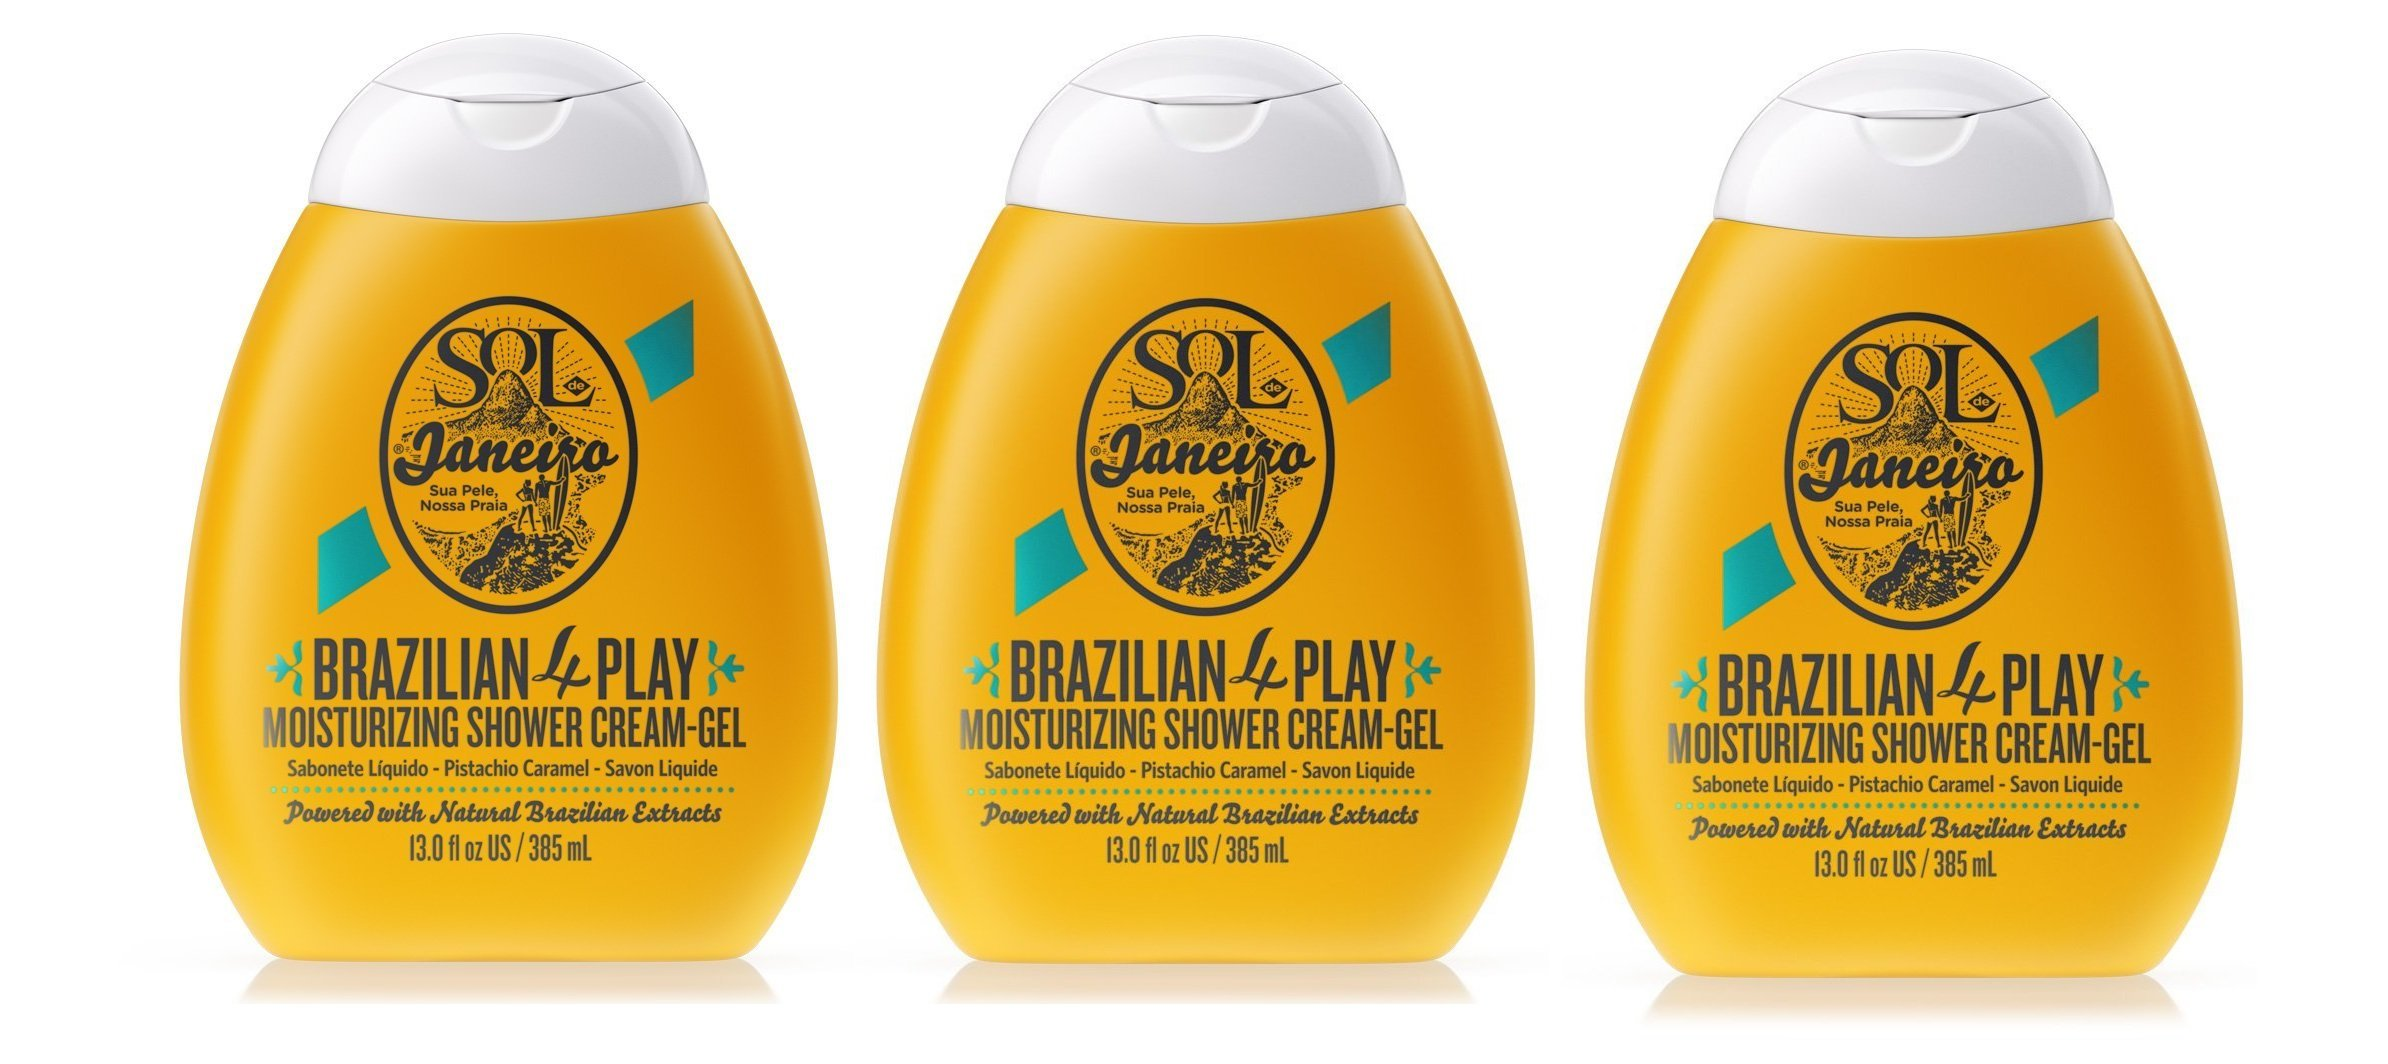 Amazon.com : Sol de Janeiro Brazilian 4 Play Moisturizing Shower Cream-Gel (3 pack) : Beauty